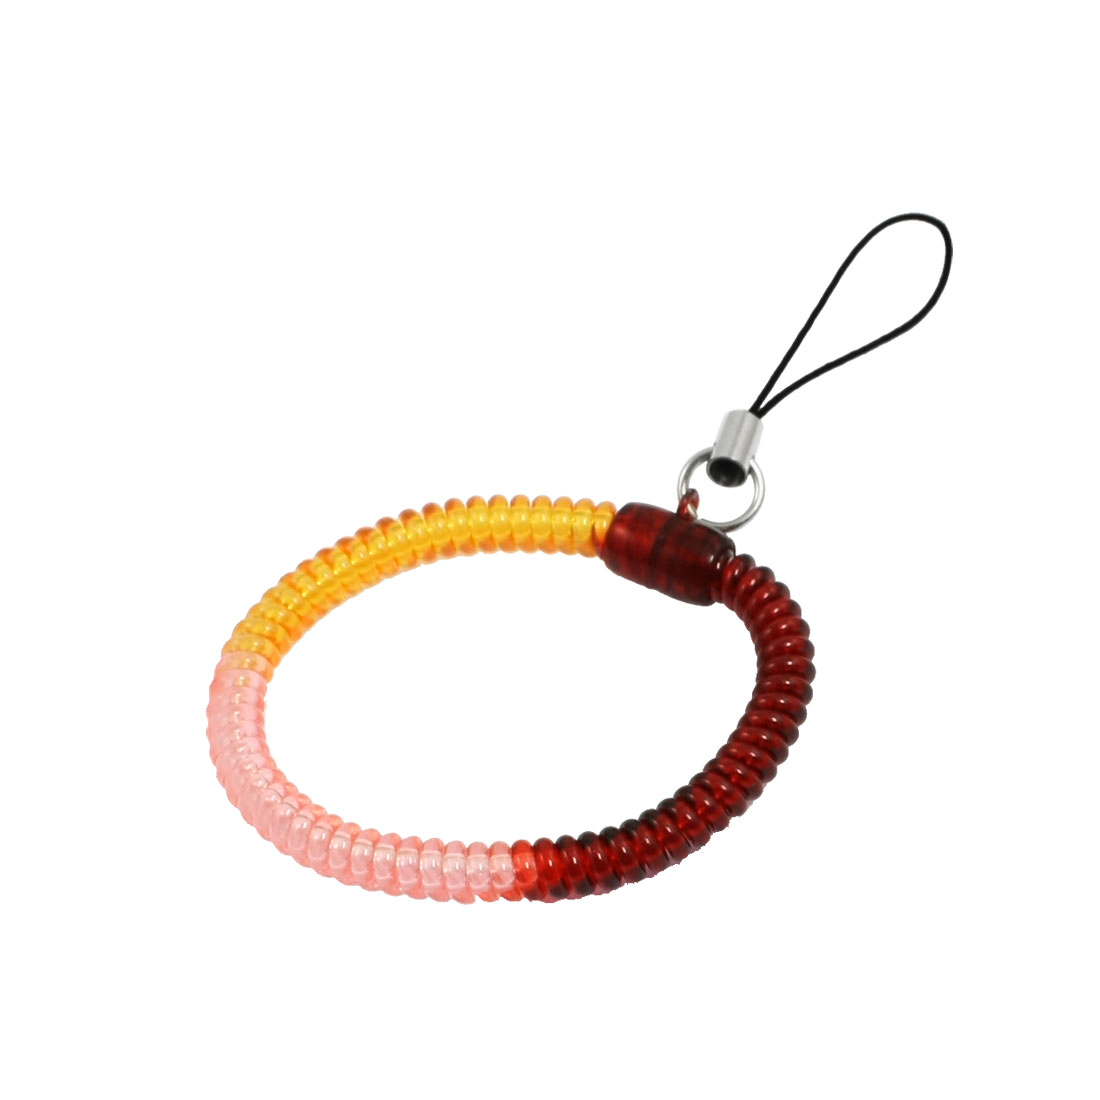 Pink Orange Red Plastic Flexible Coiled Phone Lanyard Wrist Hand Strap